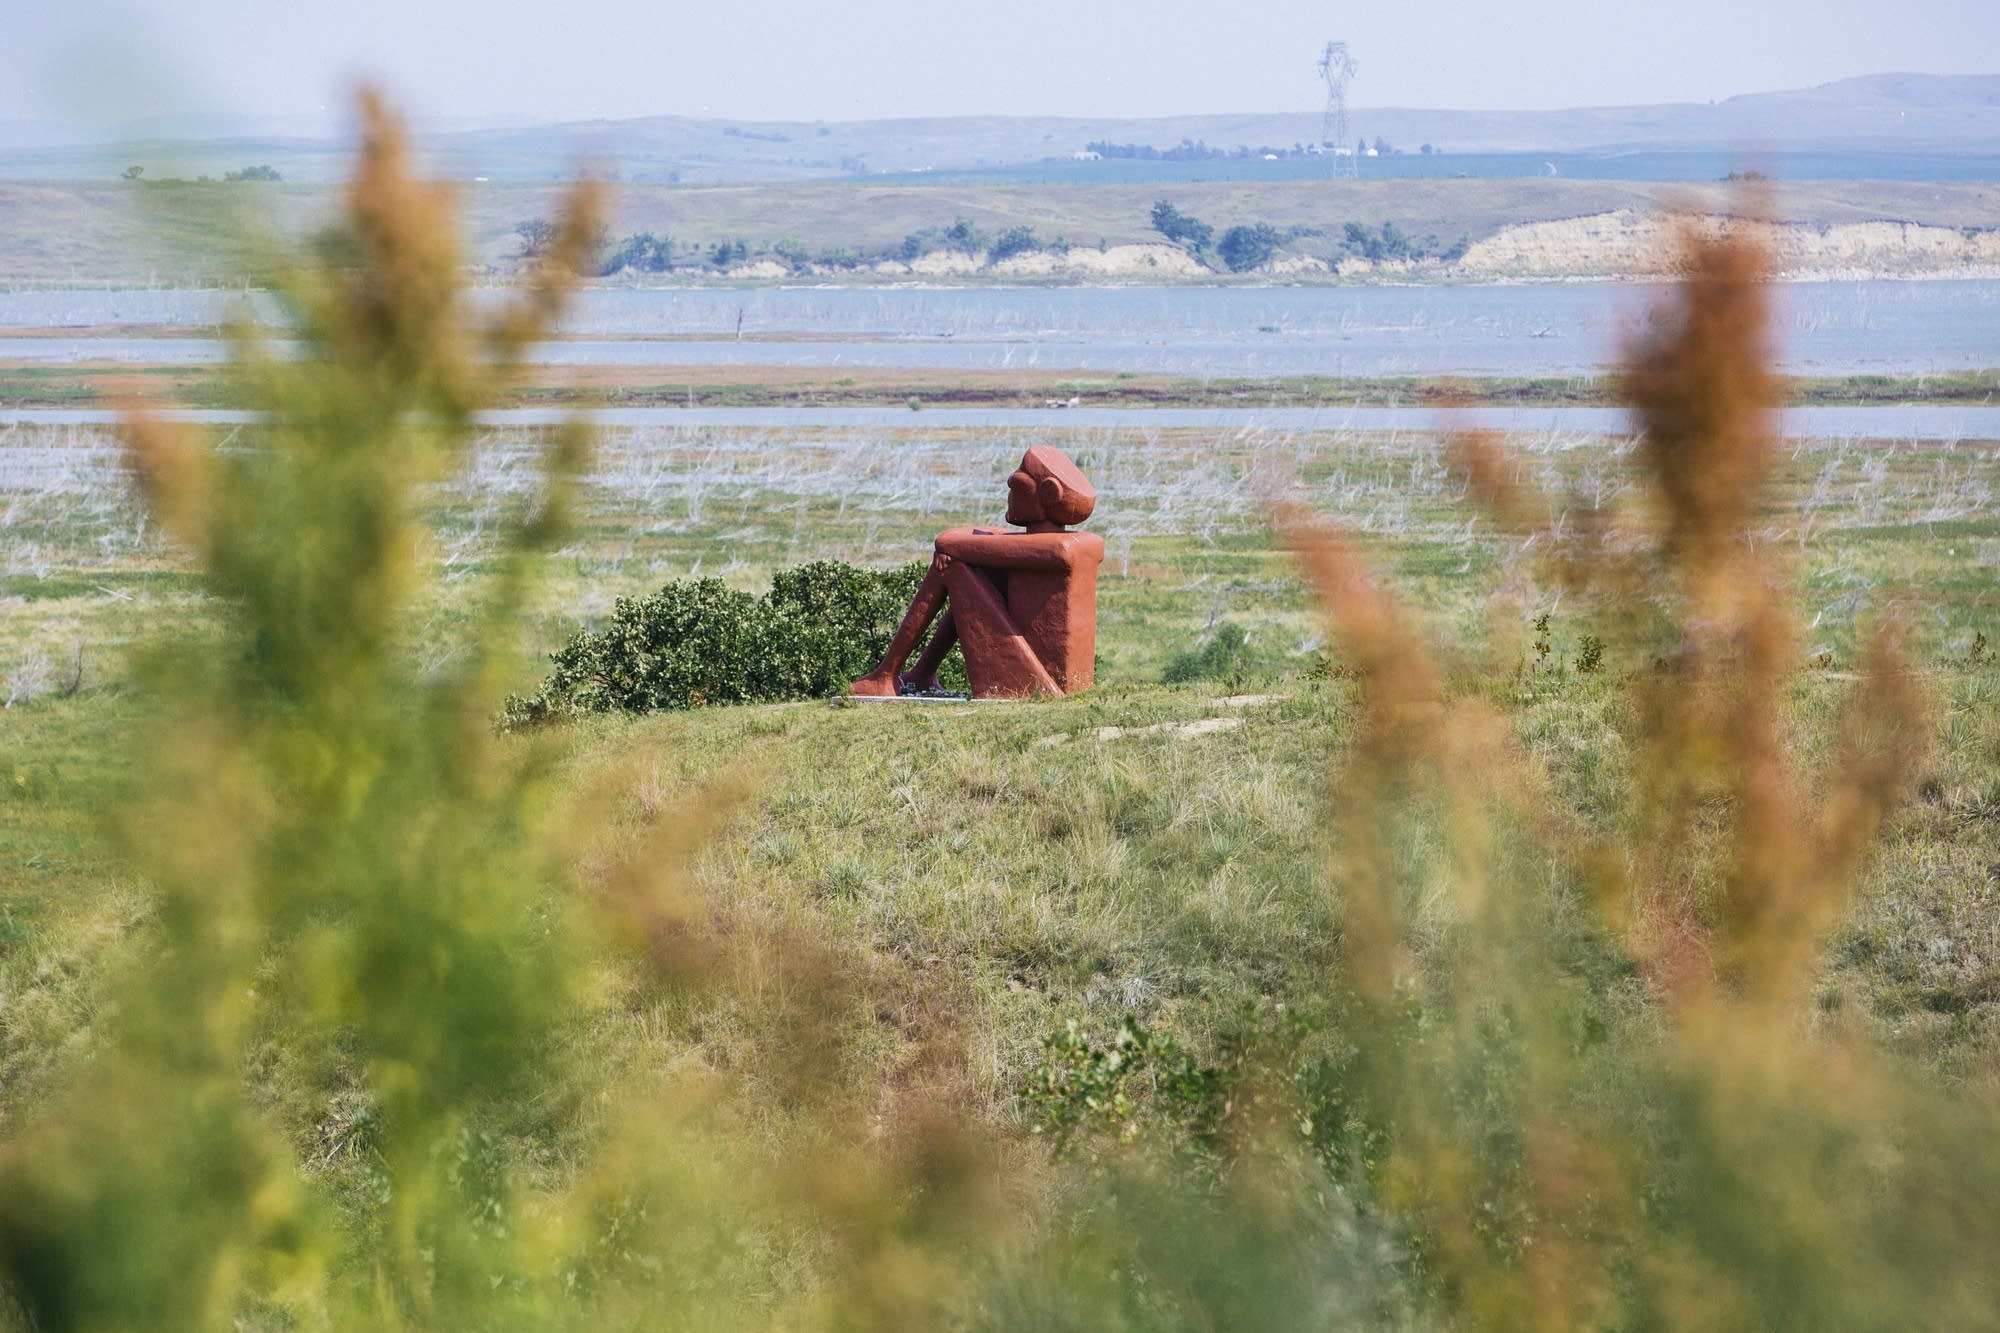 A statue sits overlooking the site of the 3 protest camps.